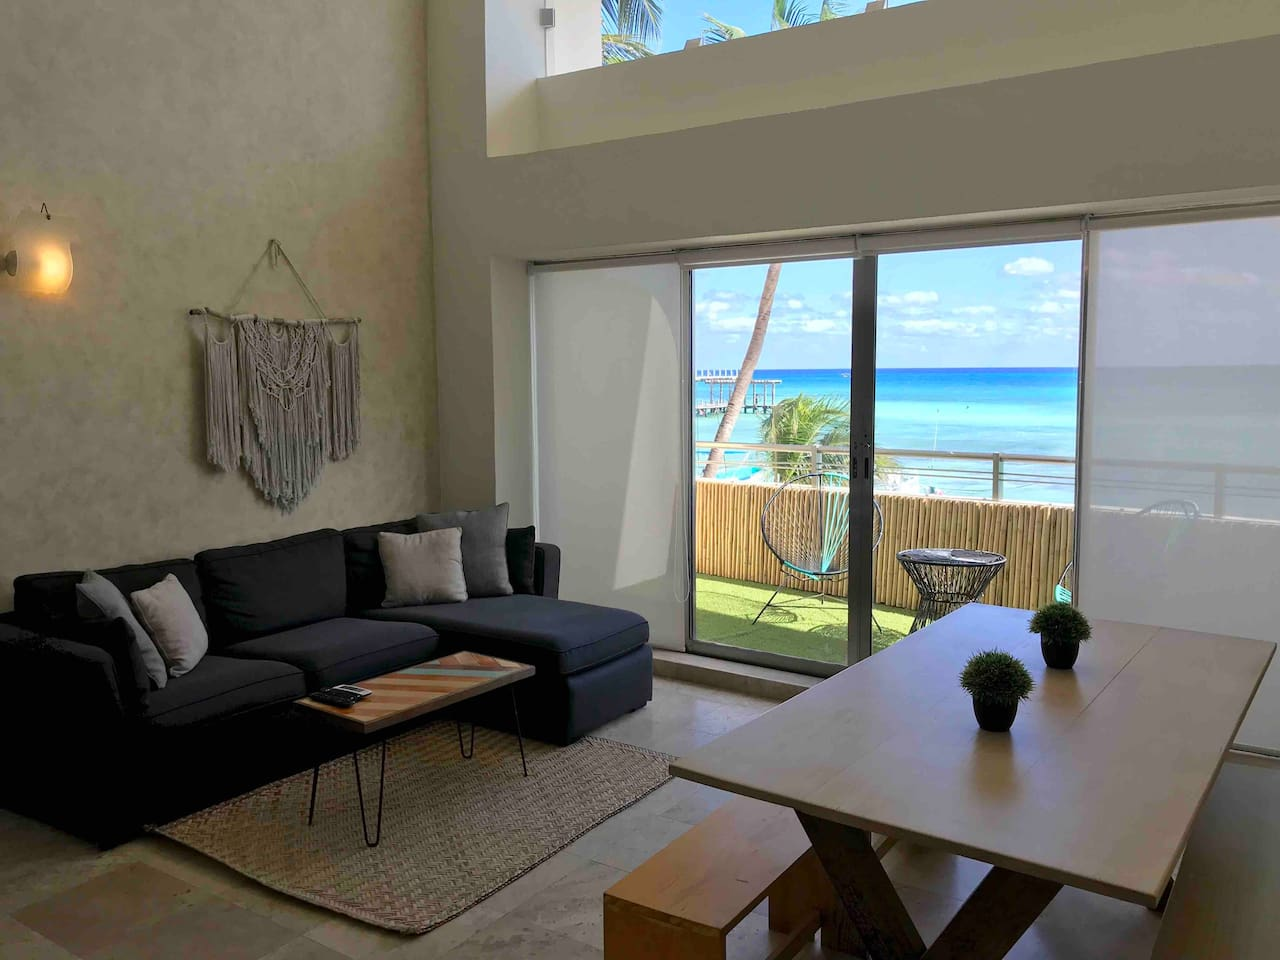 OCEANFRONT LOFT WITH AMAZING VIEW!!